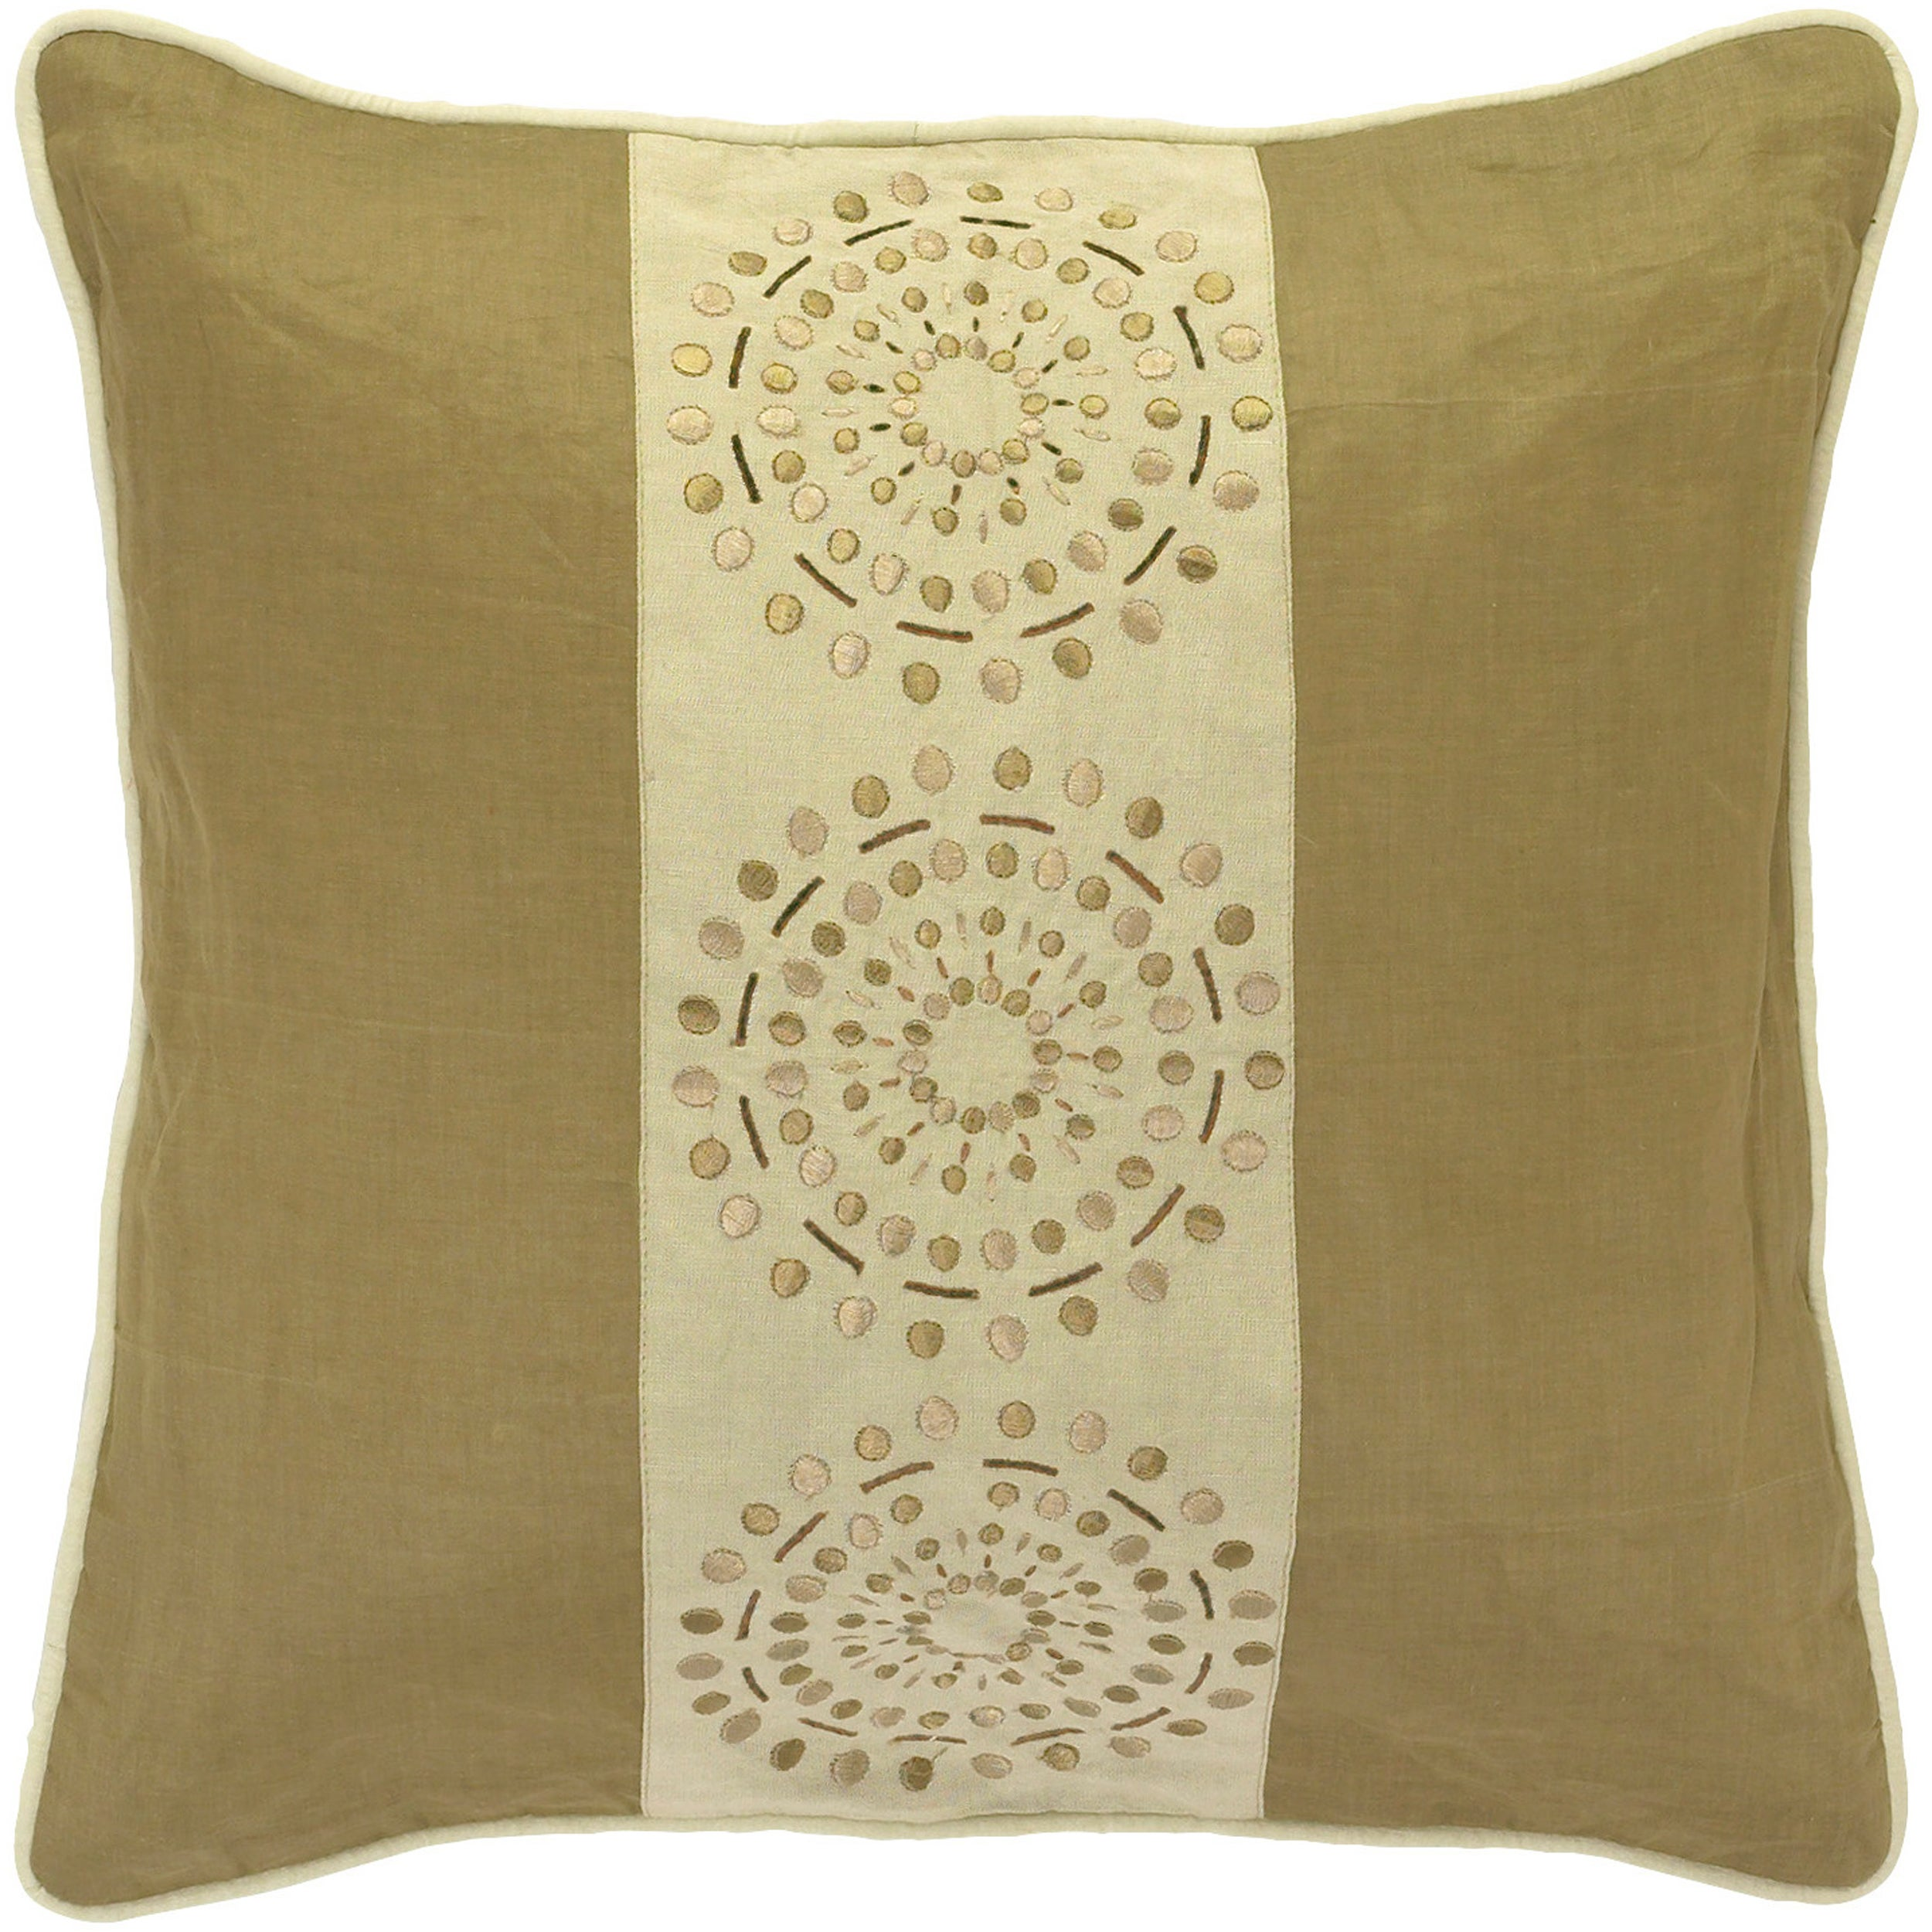 Mons Khaki/Tan Decorative Pillow